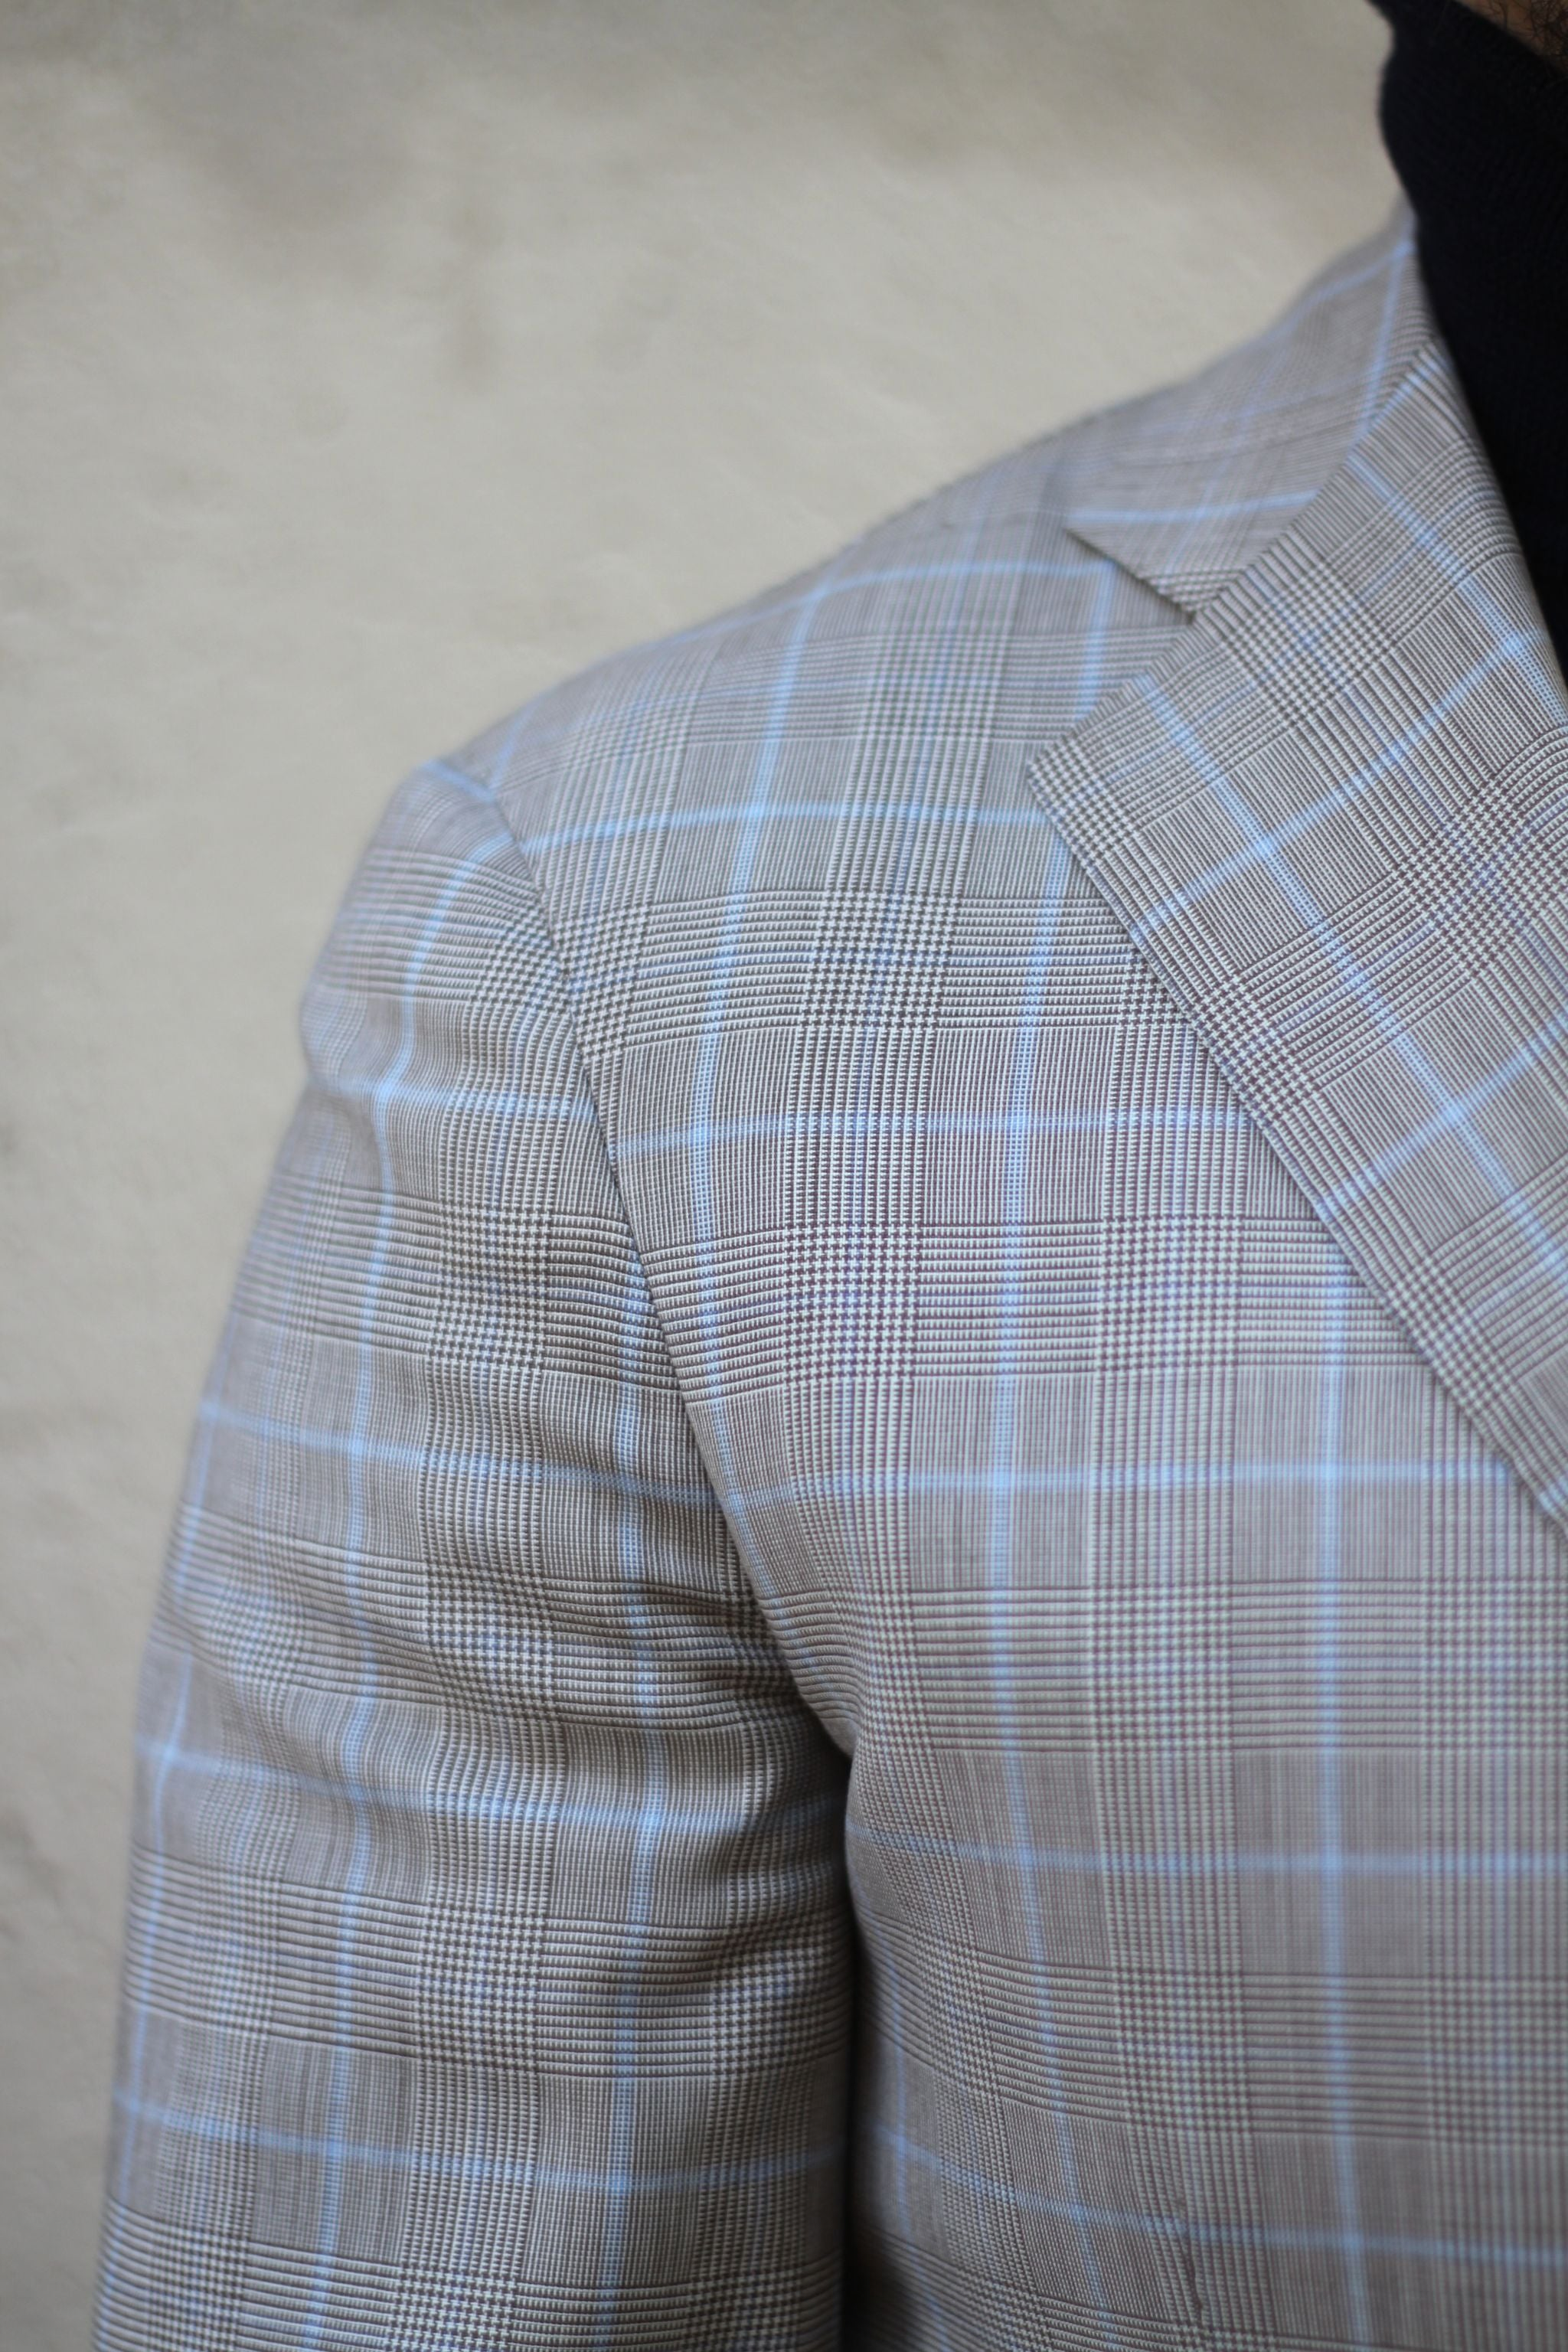 Checked sport coat details